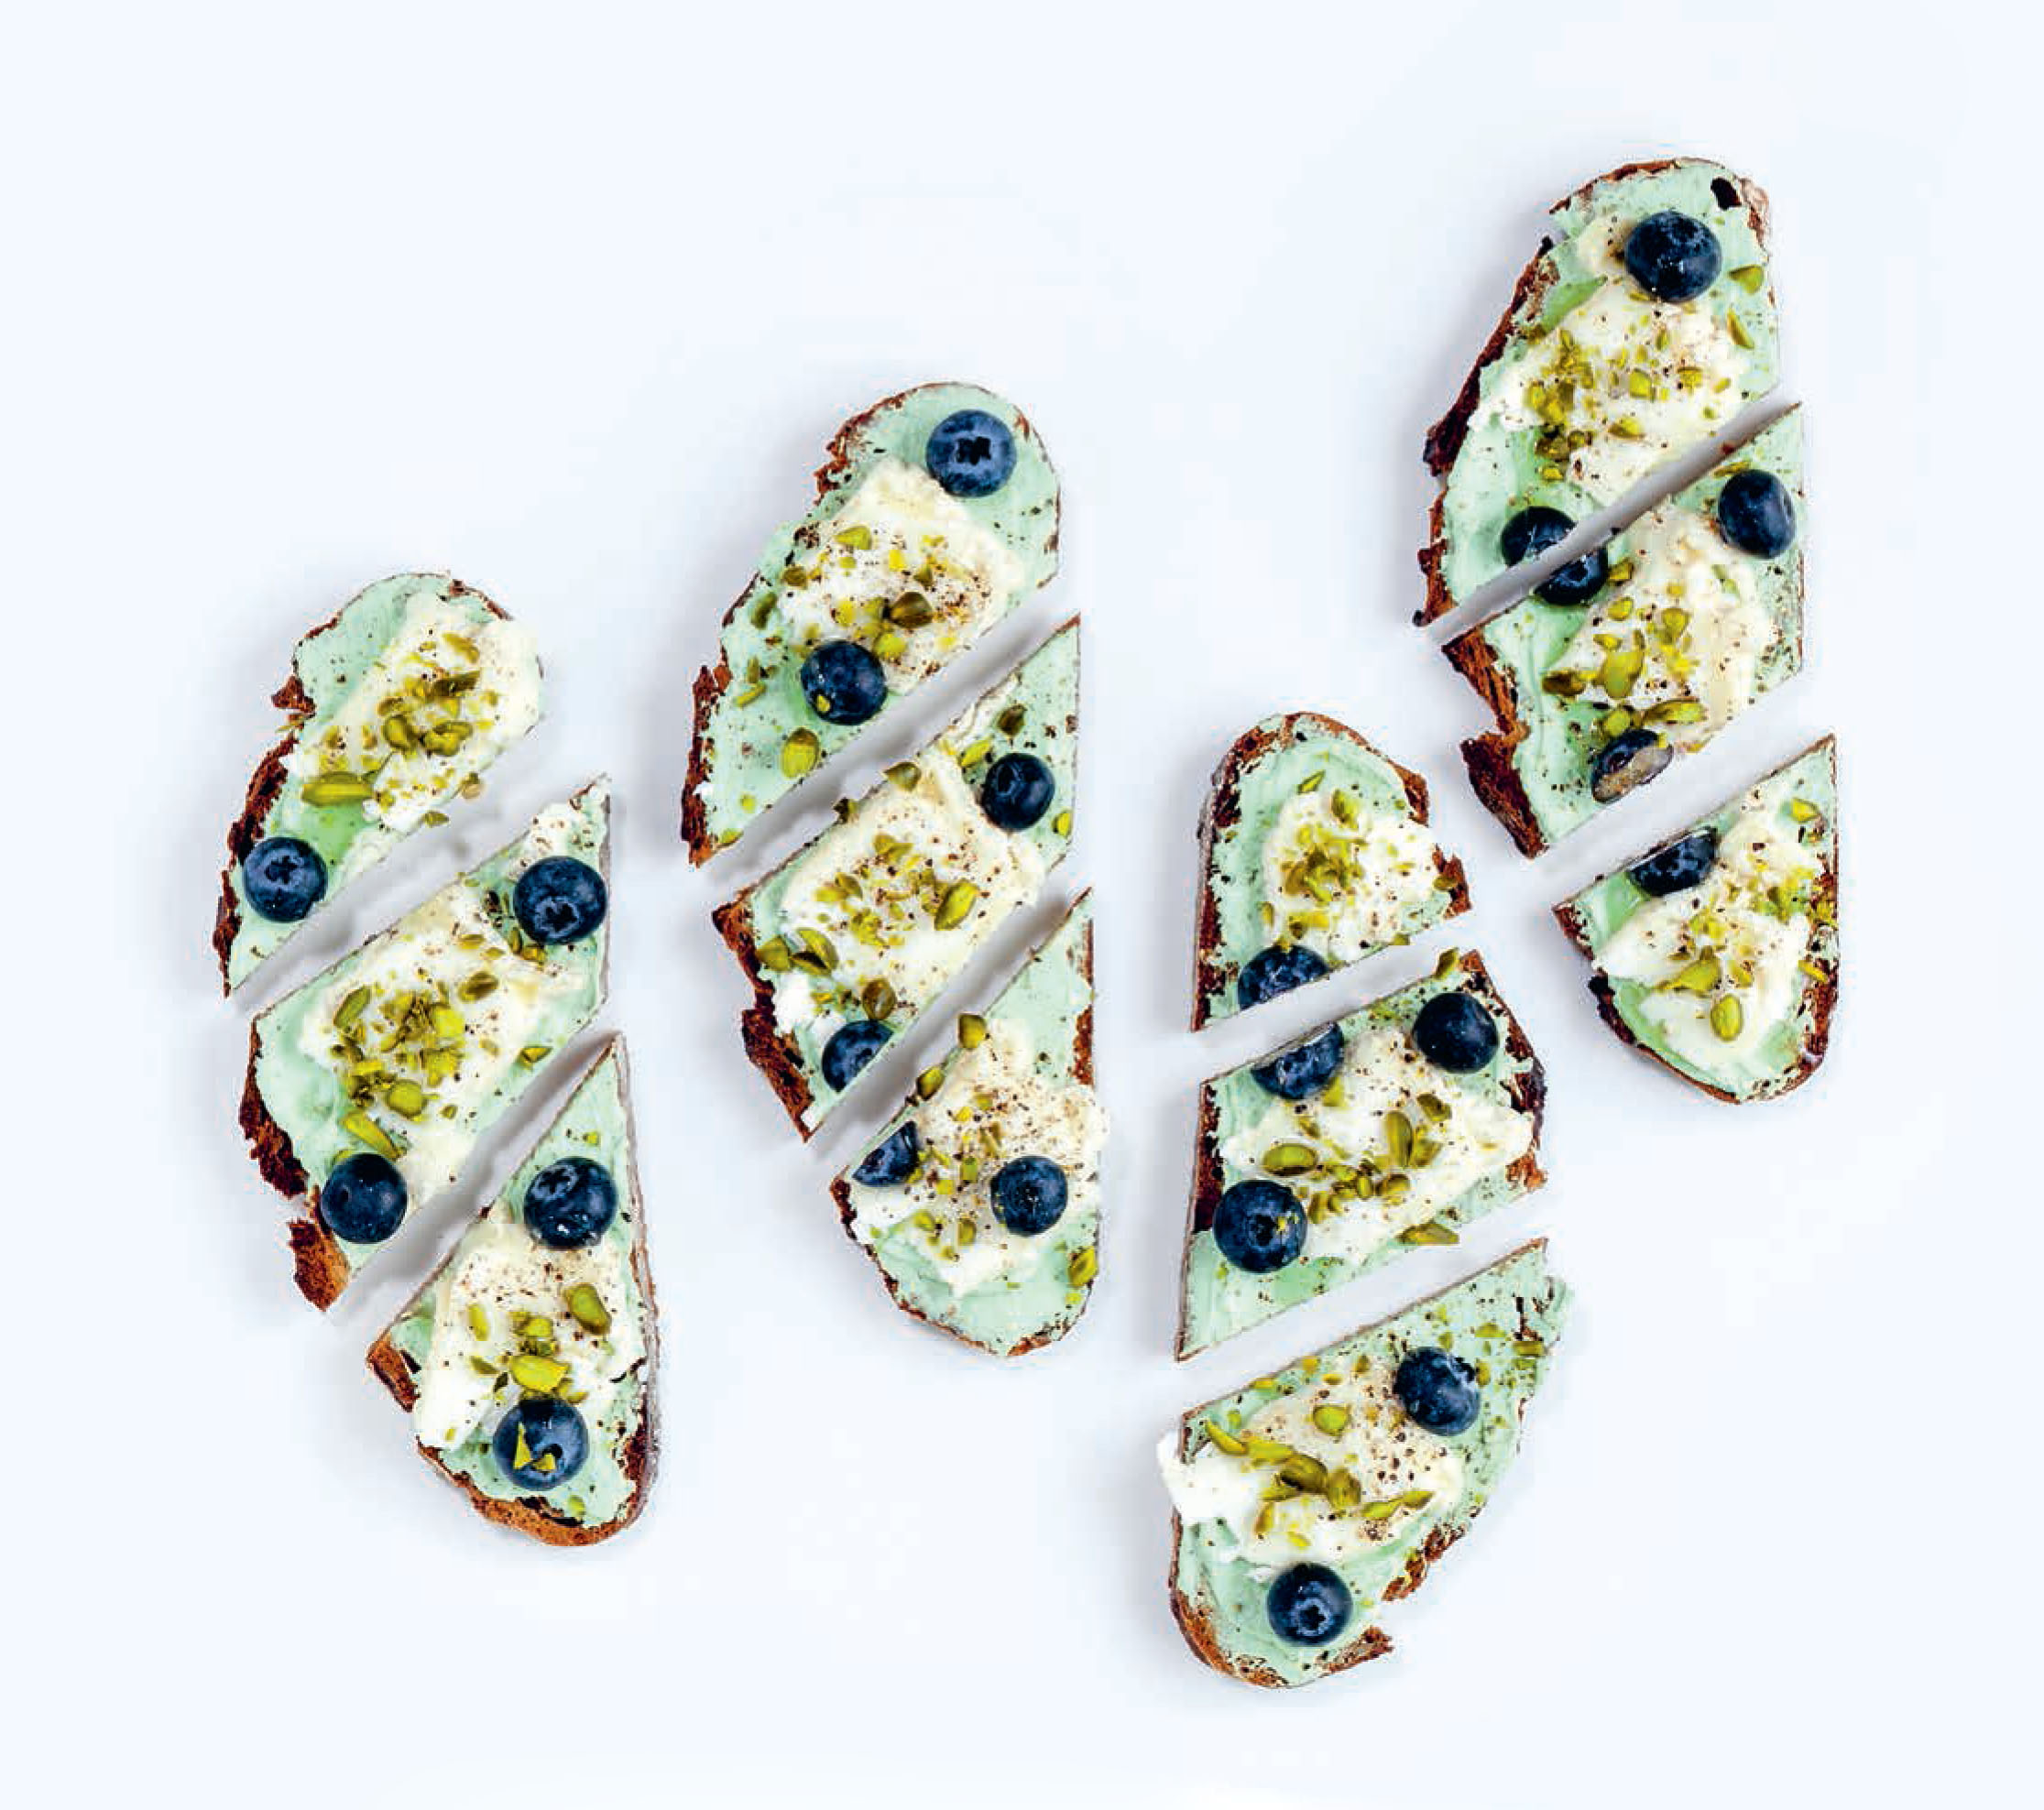 Goat's cheese, pistachios & blueberries